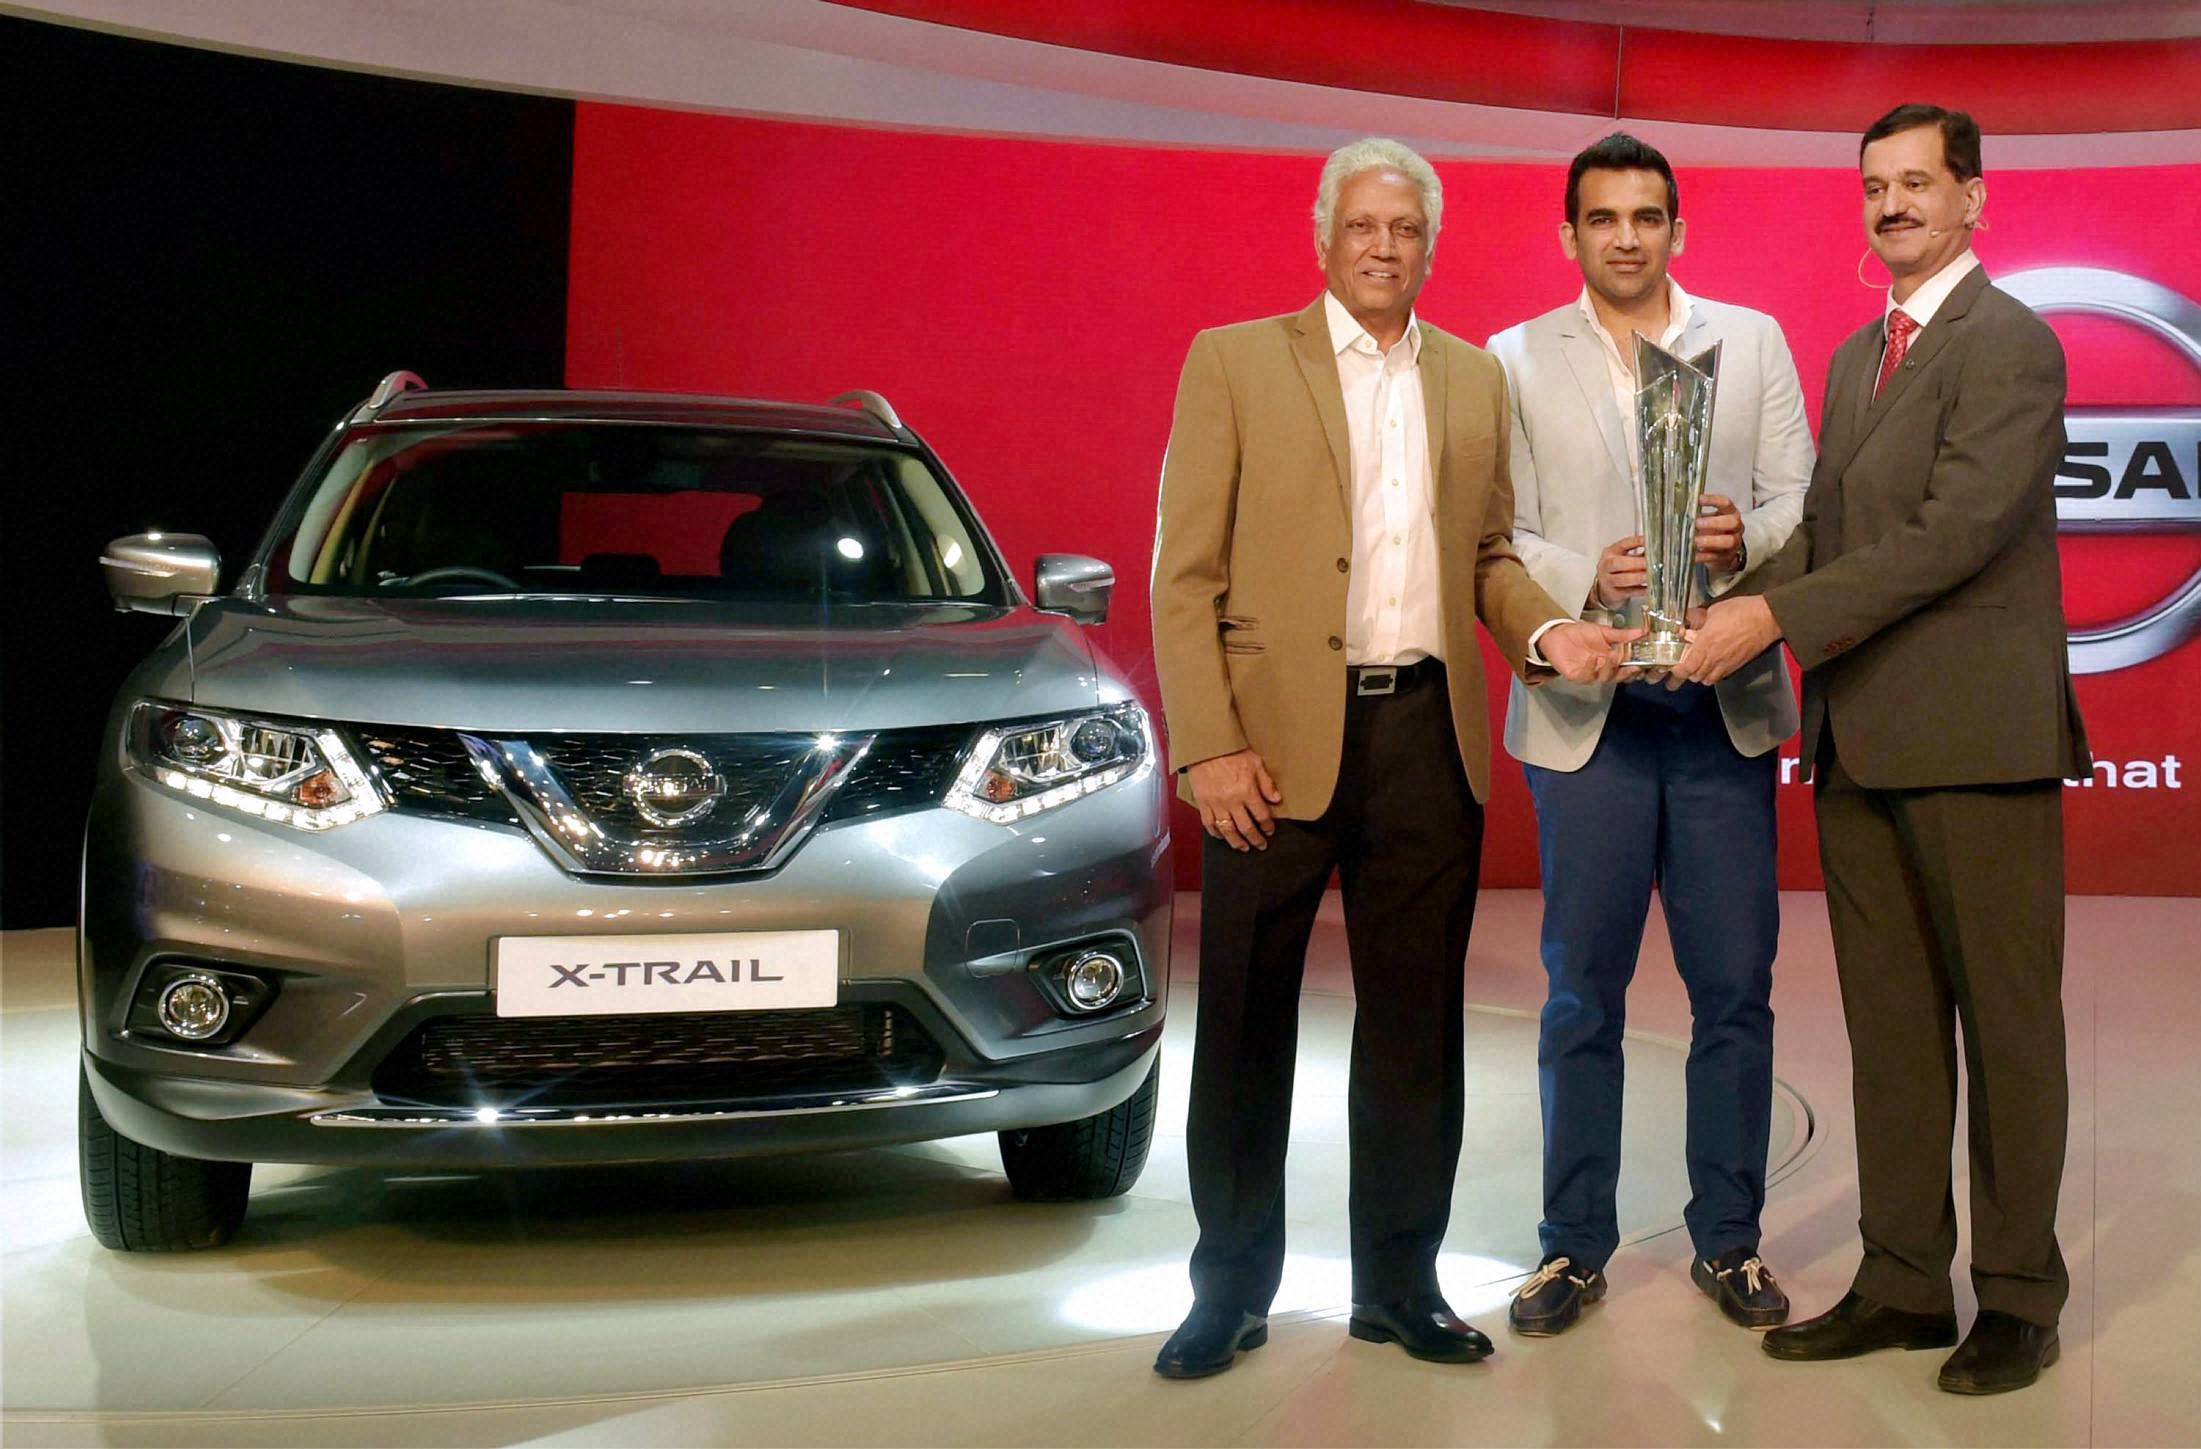 Auto expo 2016 world t20 trophy at nissan stall